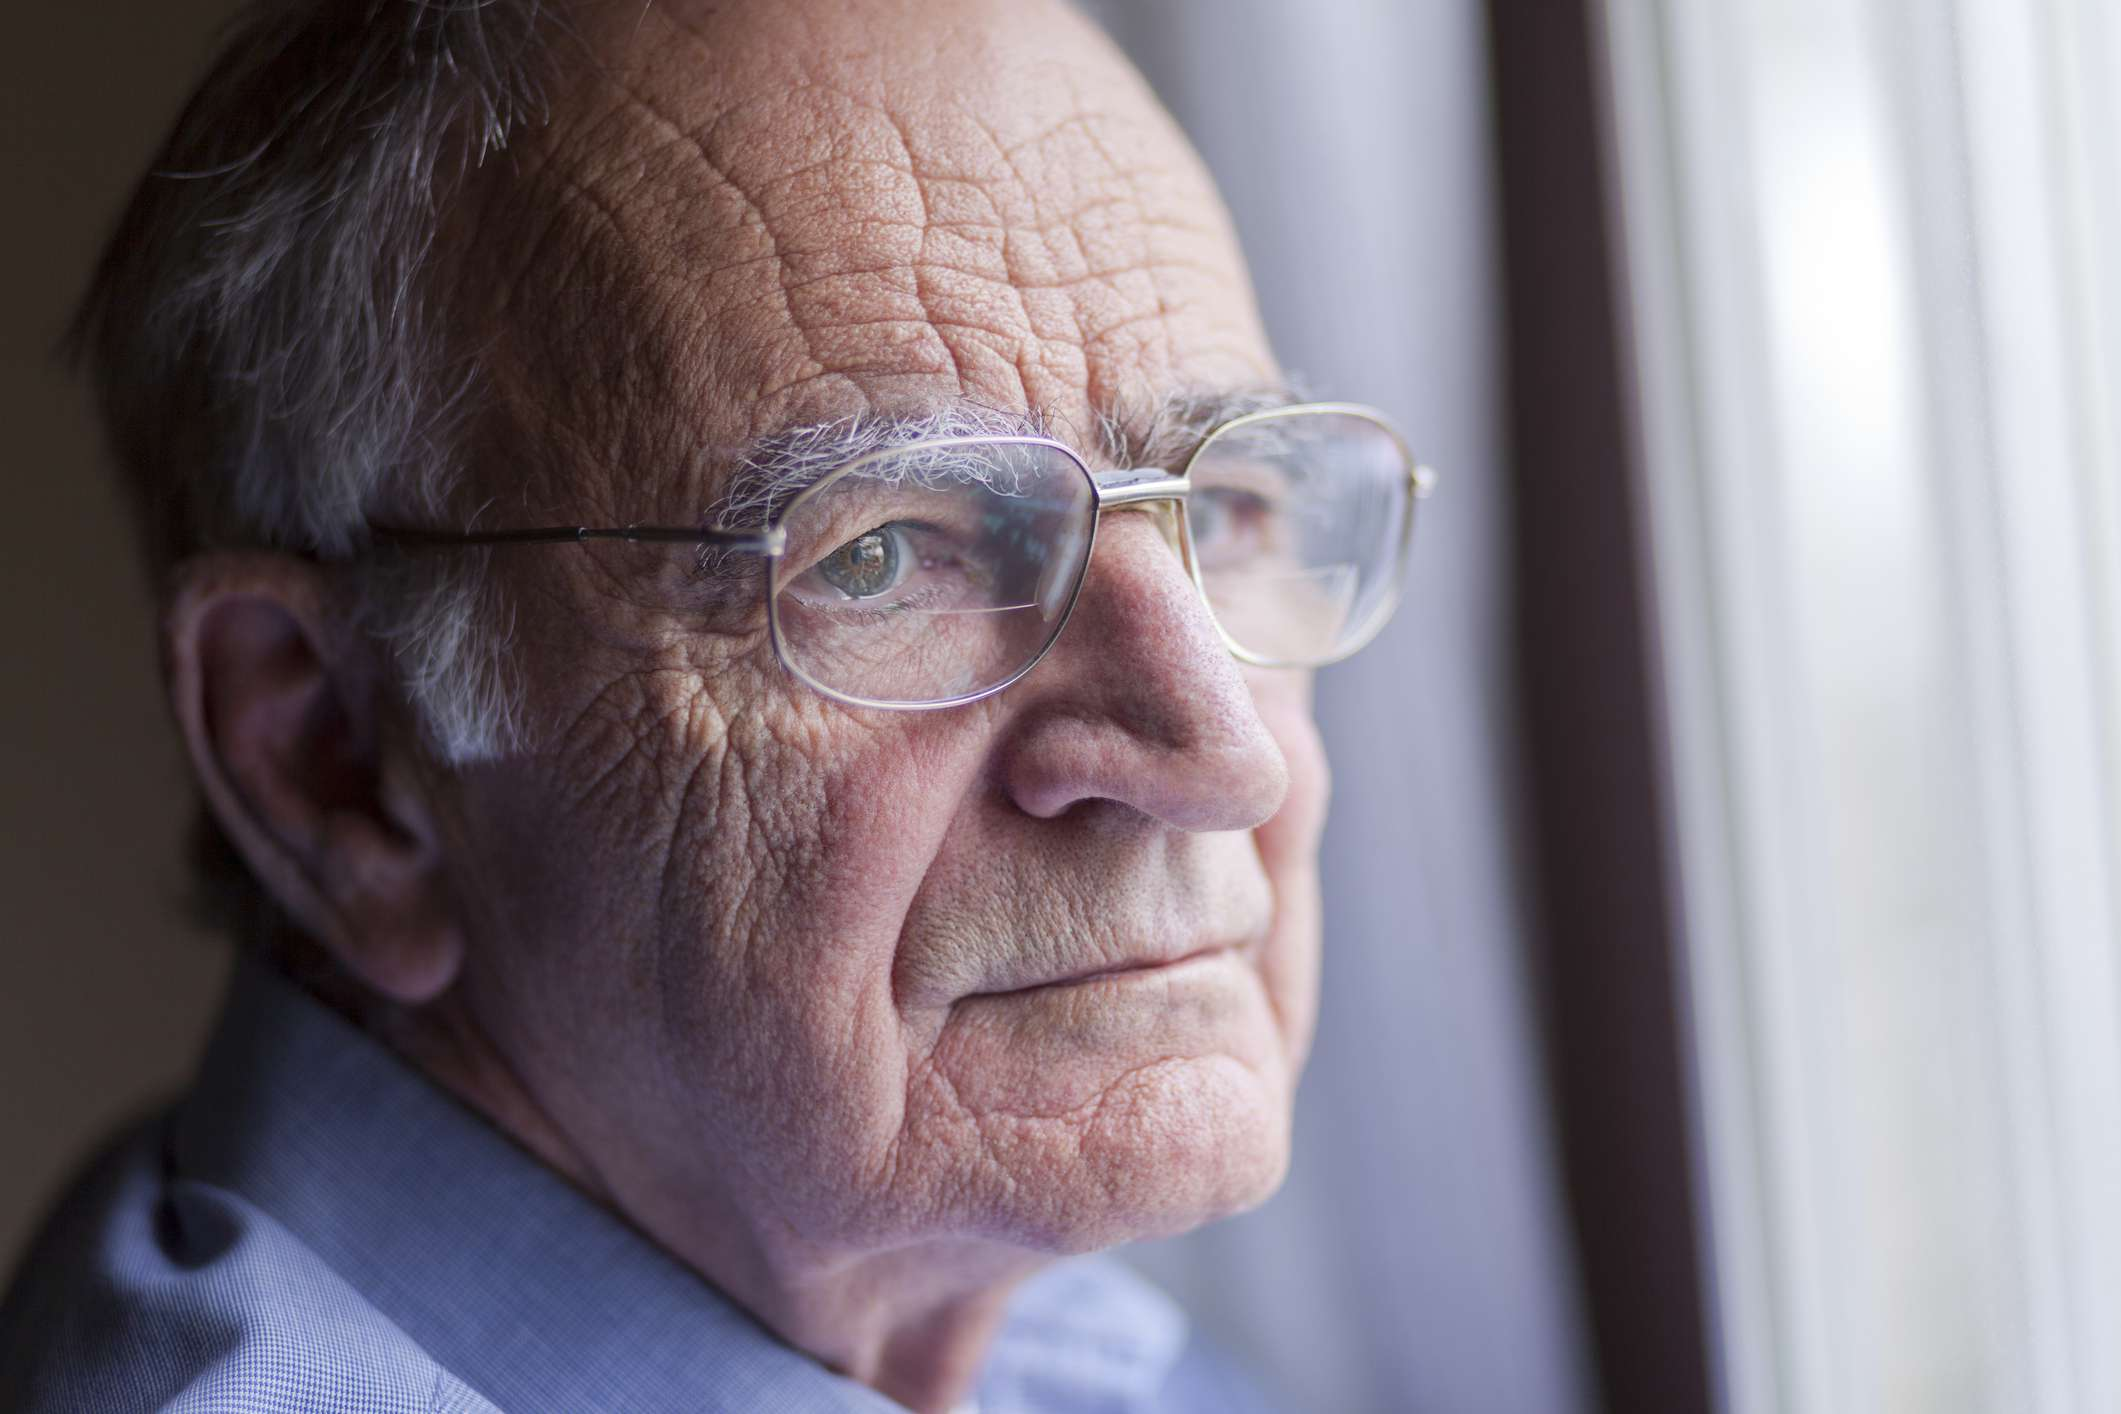 An older man looking out the window